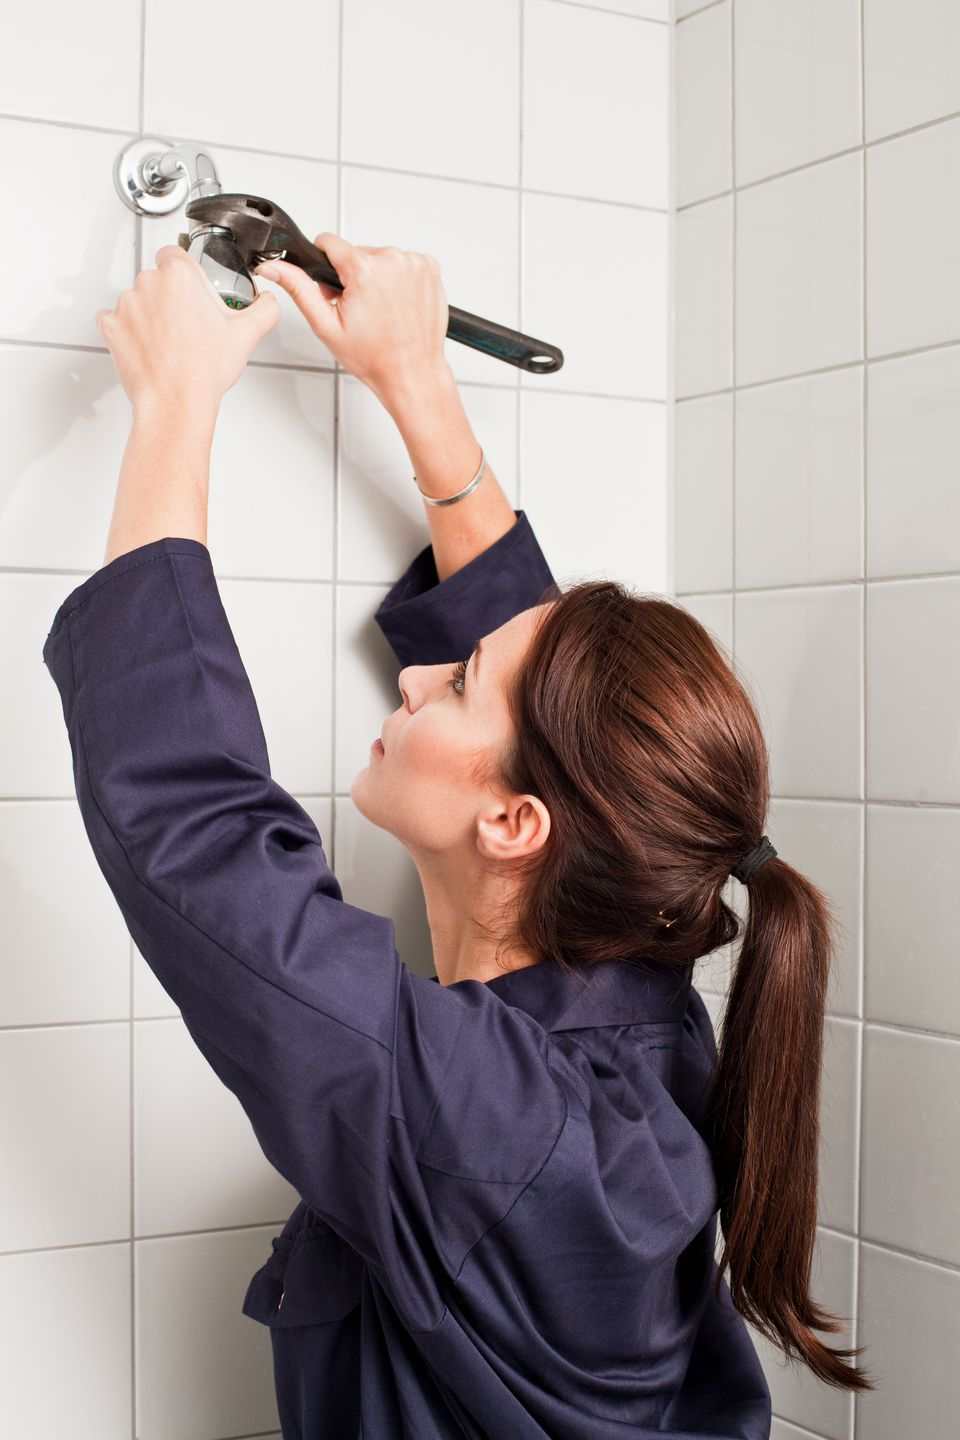 Female plumber fixing shower head